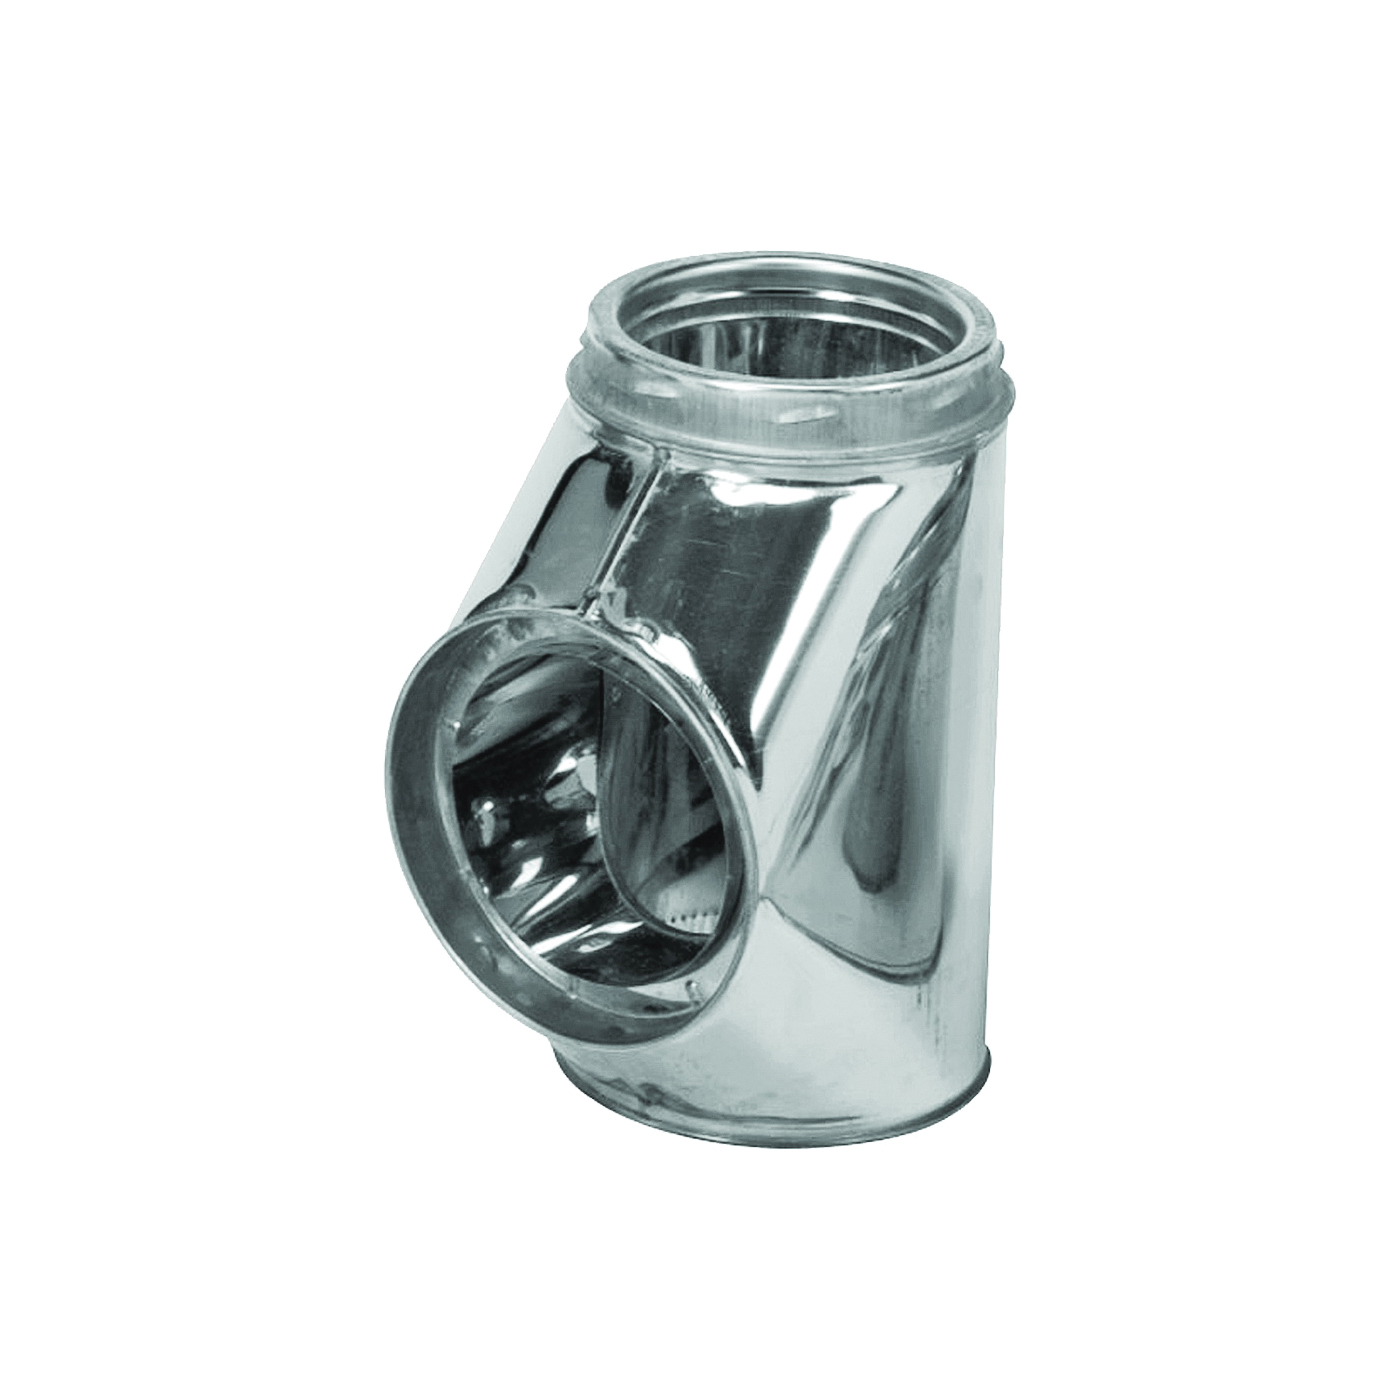 Picture of SELKIRK 206100 Insulated Chimney Tee with Cap, 6-1/4 in Connection, Stainless Steel